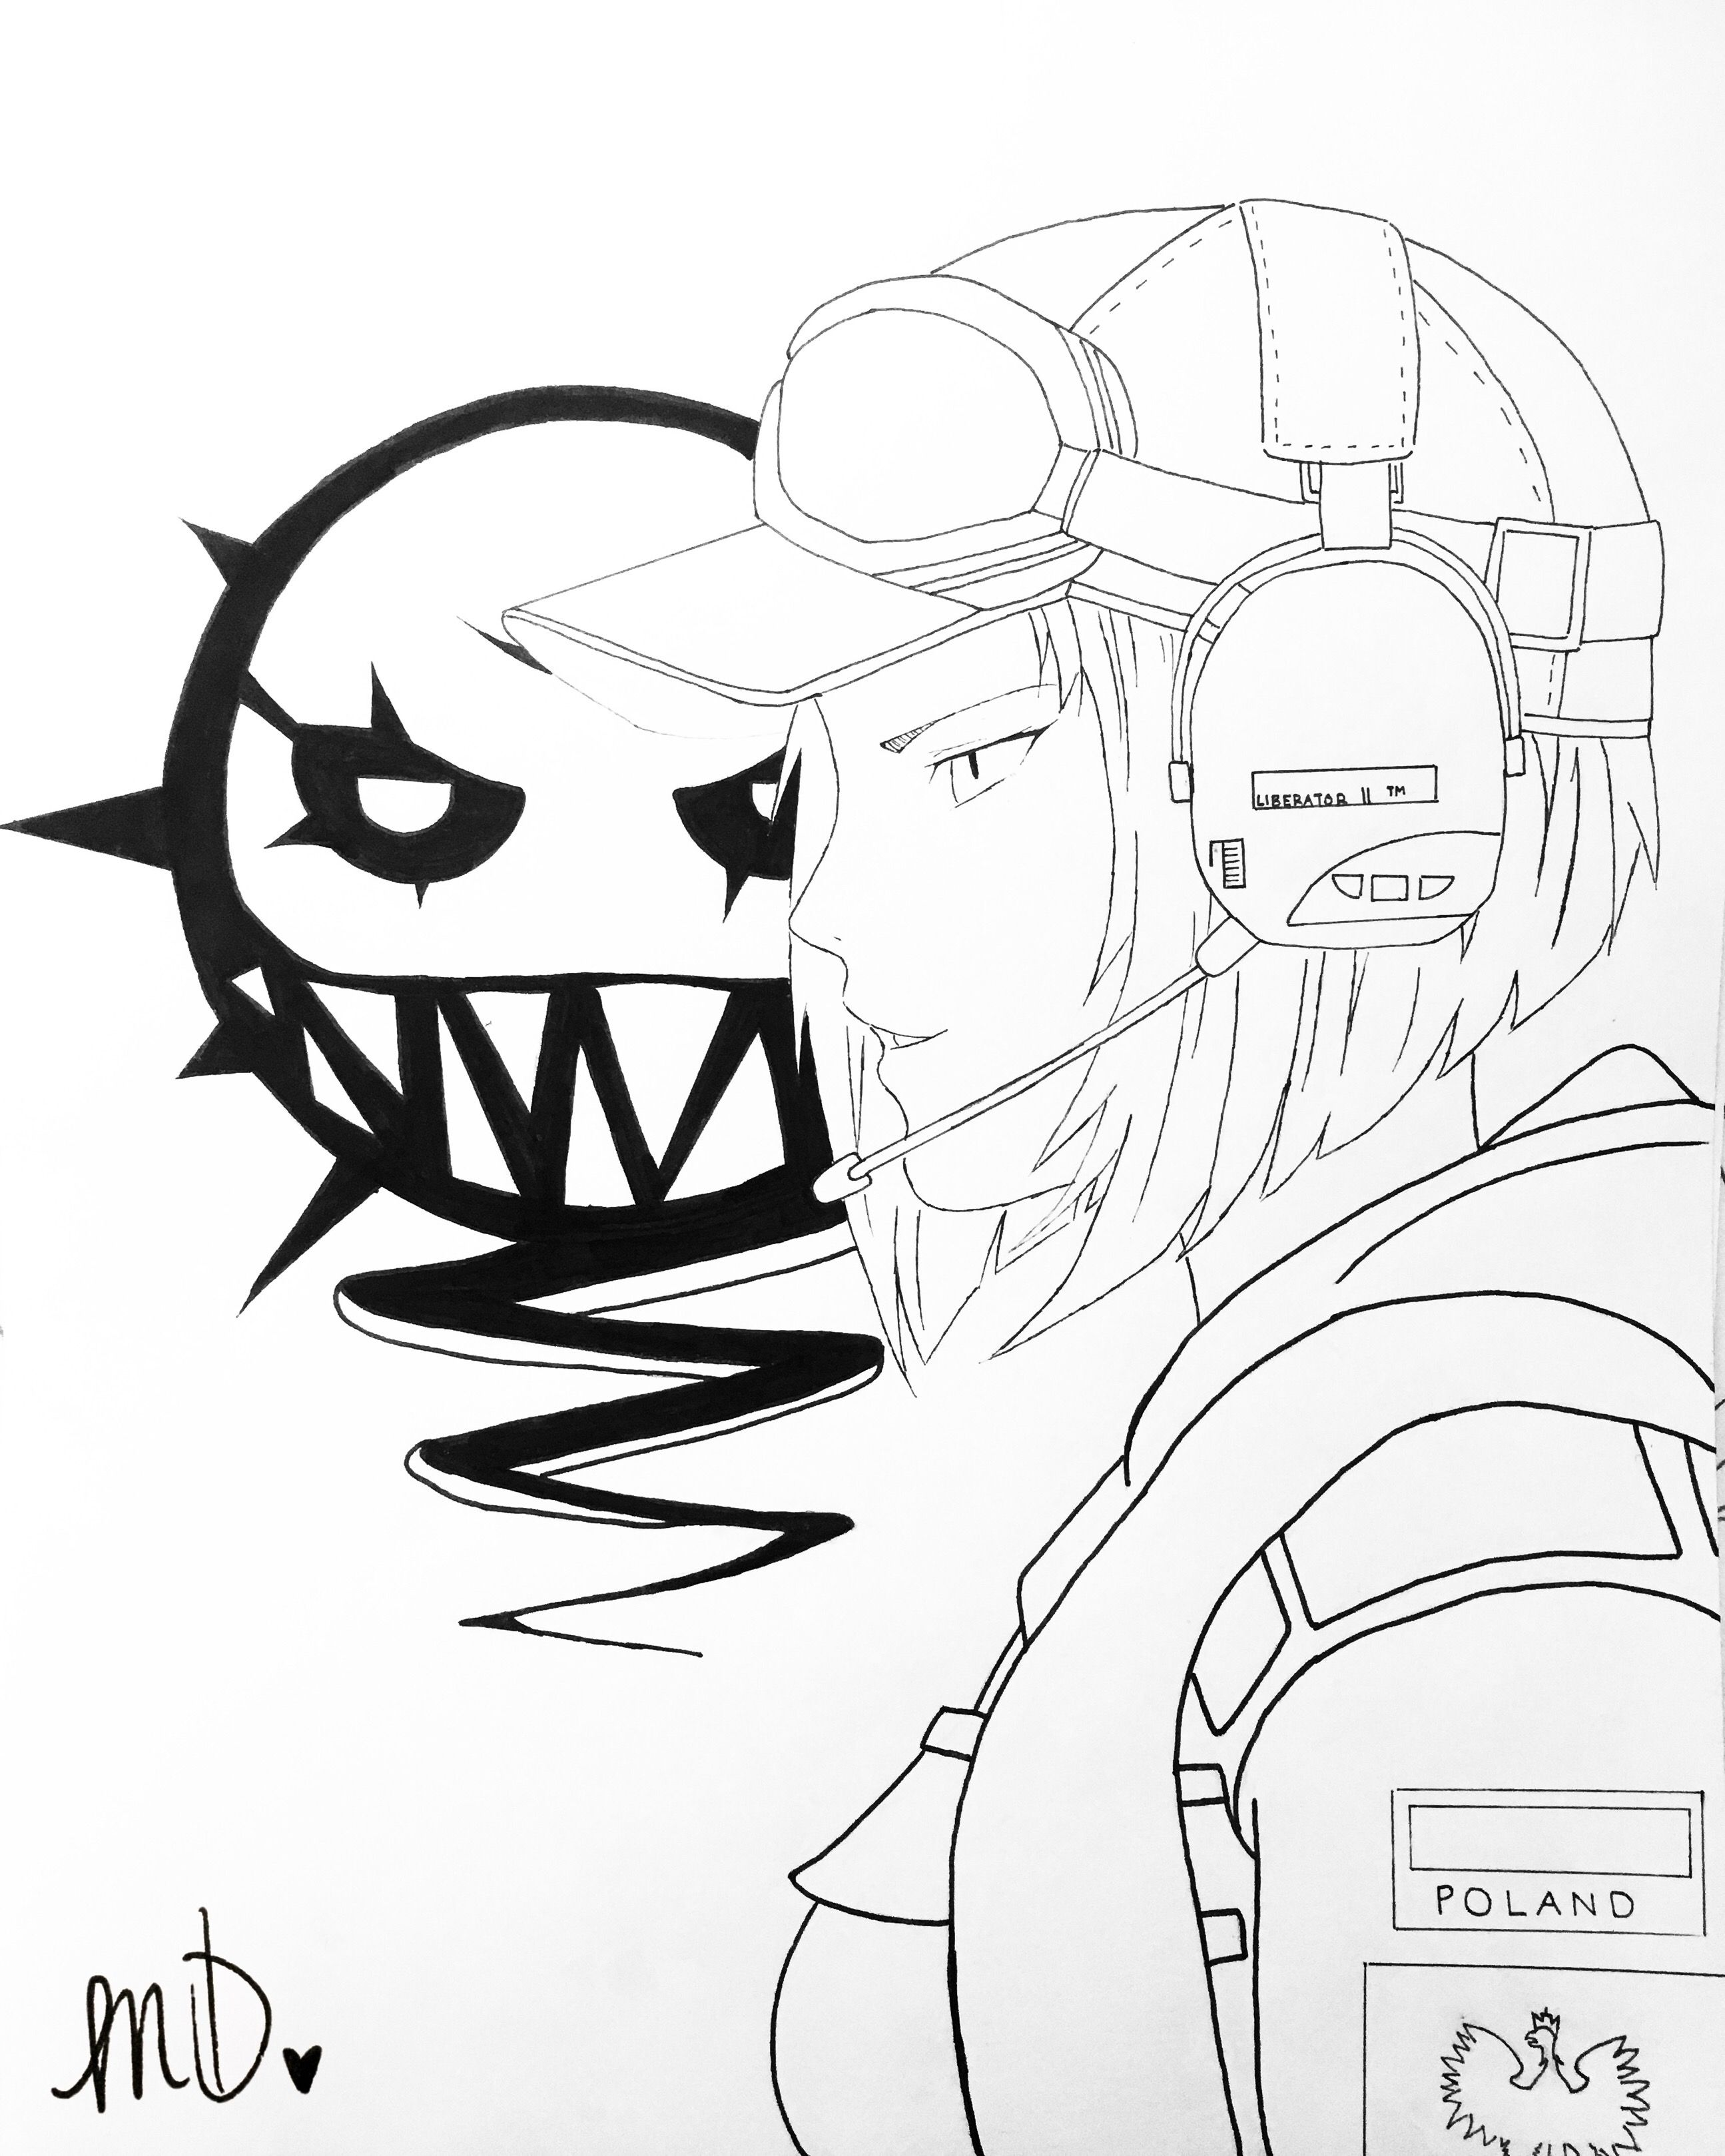 Drawing Of Ela From Rainbow Six Siege With Images Star Wars